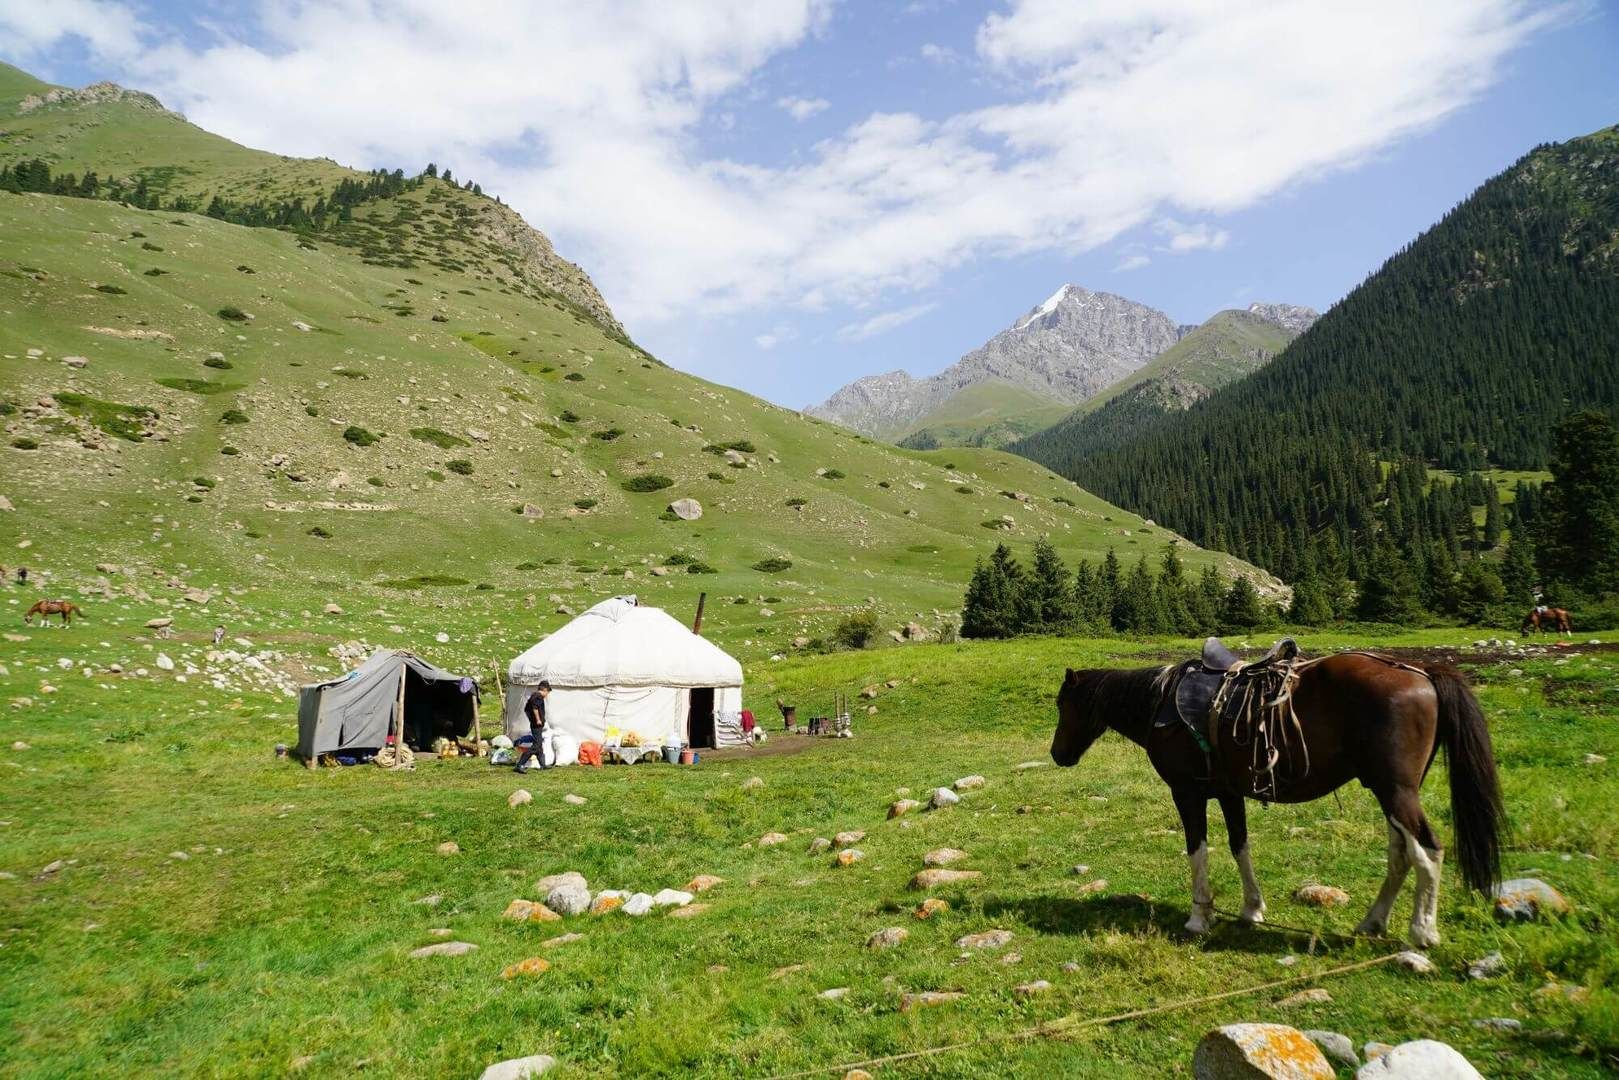 Horse in front of yurt in Kyrgyz mountain pasture in Kyrgyzstan & Kazakhstan Tour